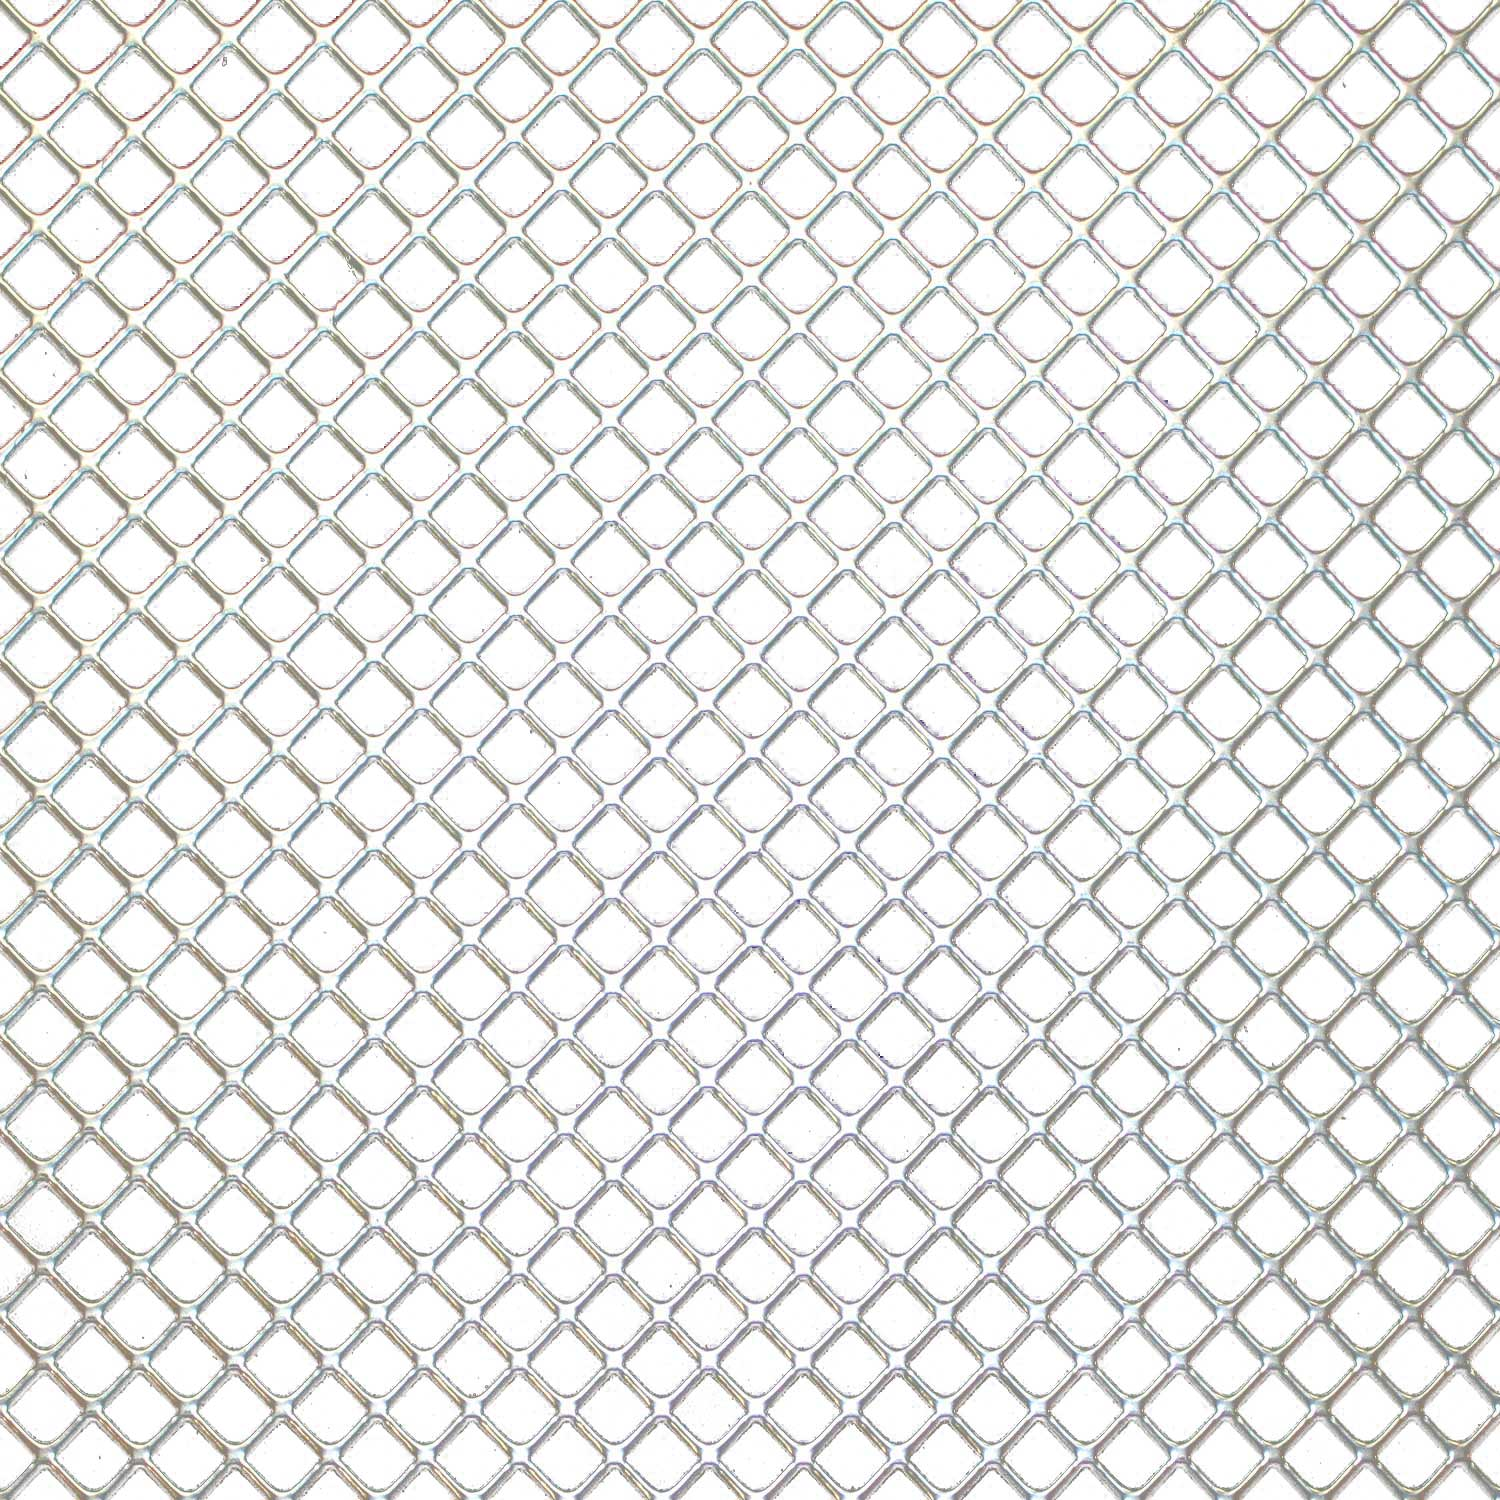 Wire grate pattern ceiling tile silver black silver gray silver white dailygadgetfo Images